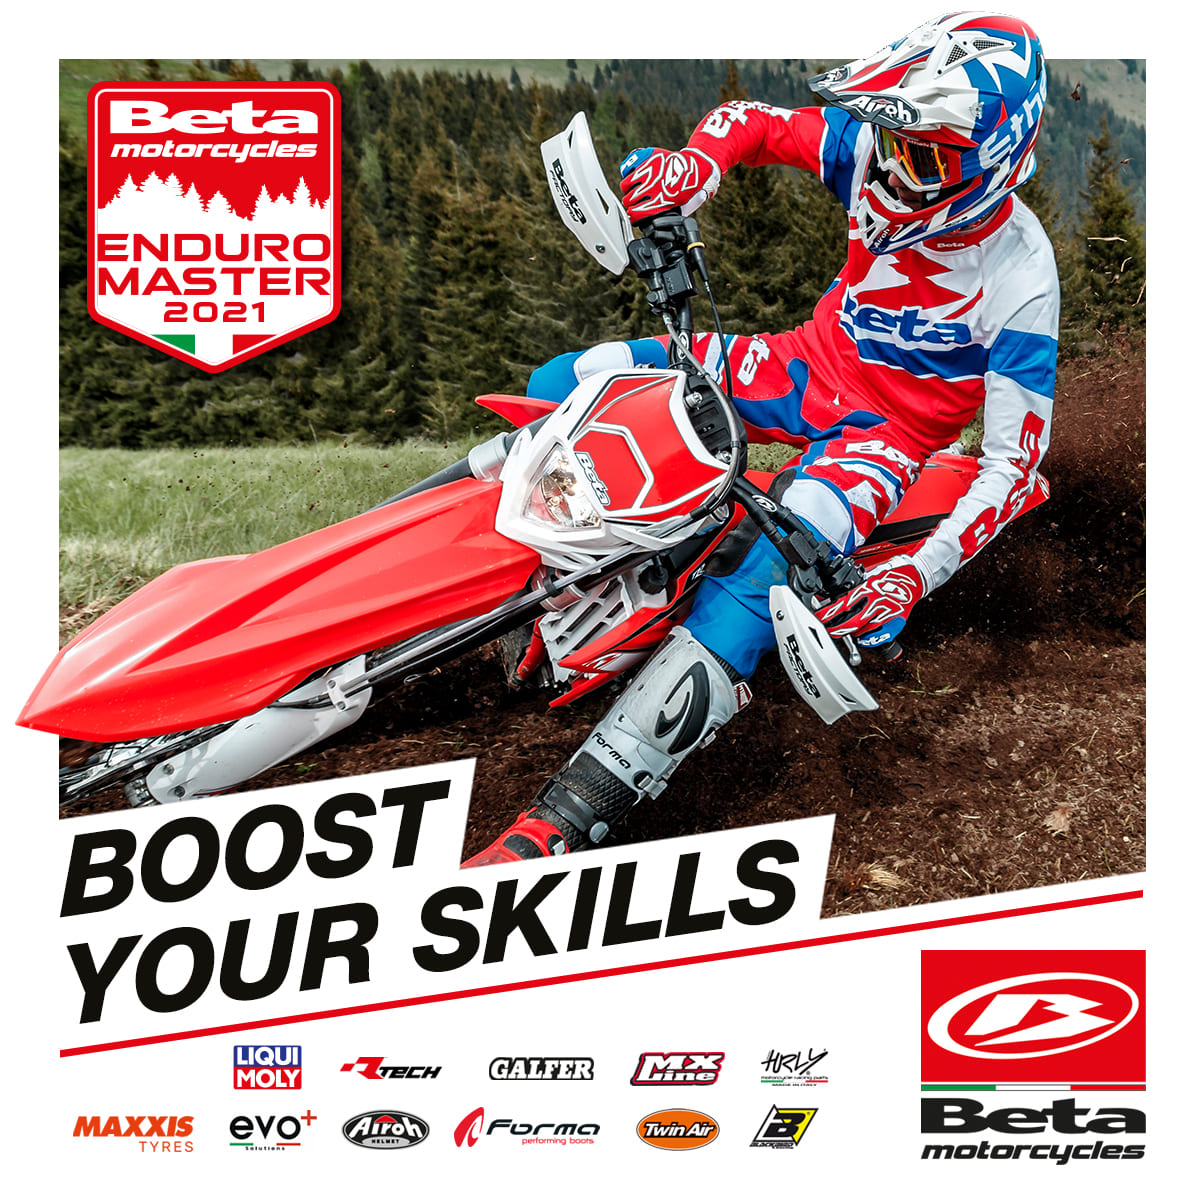 ENDURO MASTER BETA 2021